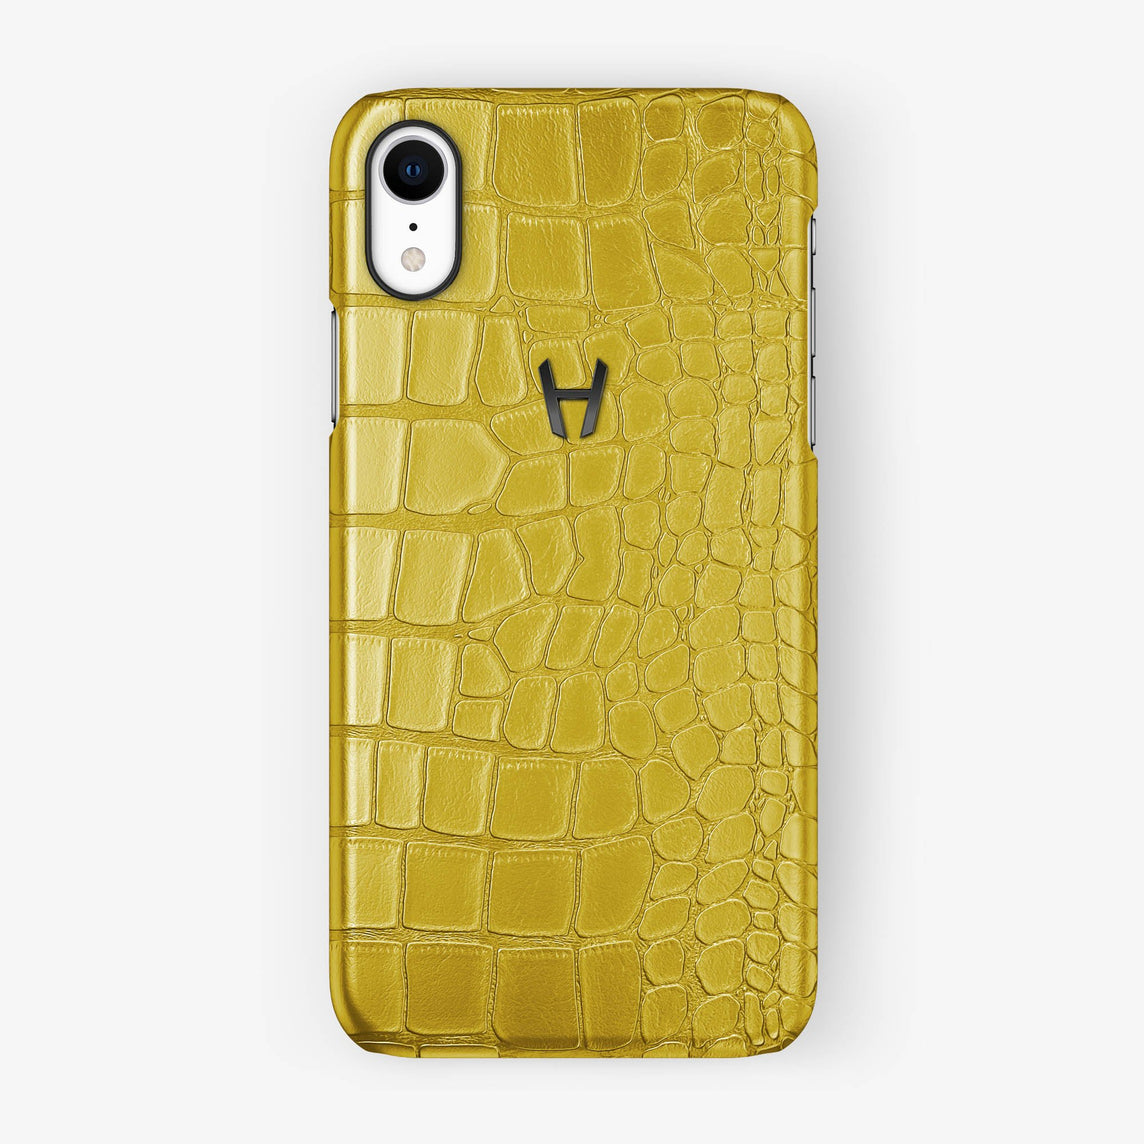 Alligator [iPhone Case] [model:iphone-xr-case] [colour:yellow] [finishing:black]